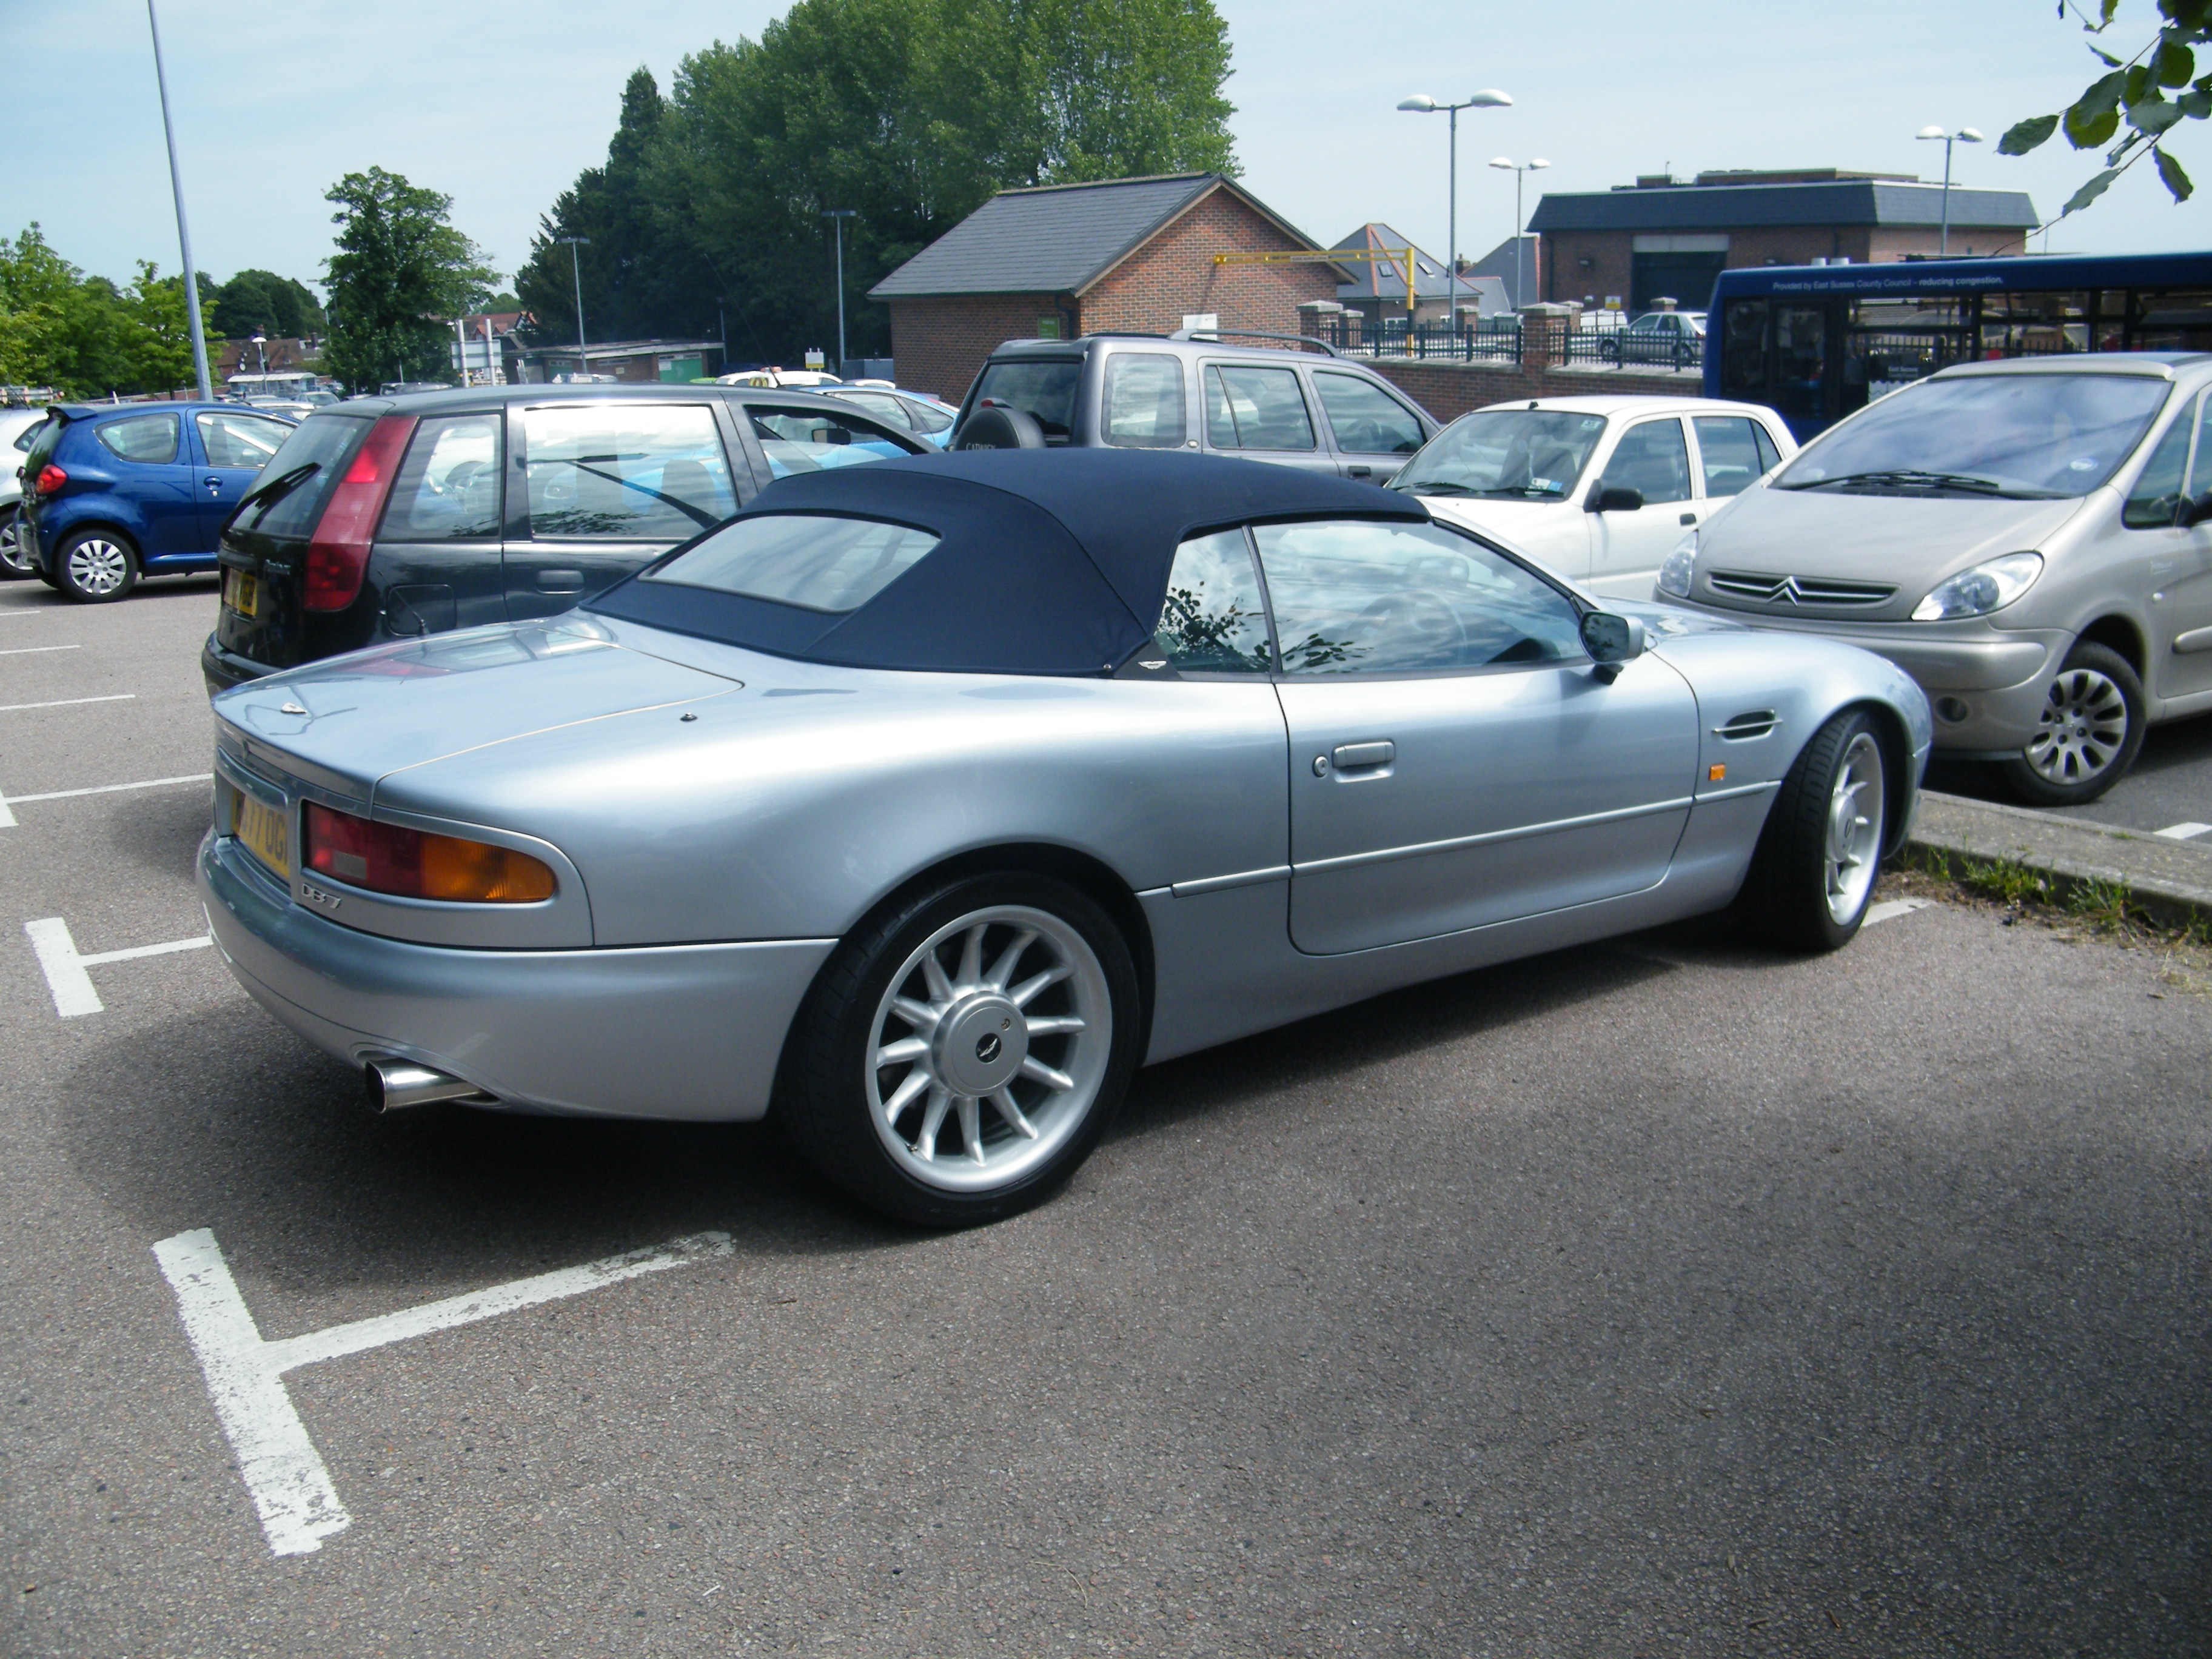 2014 aston martin db7 volante � pictures information and